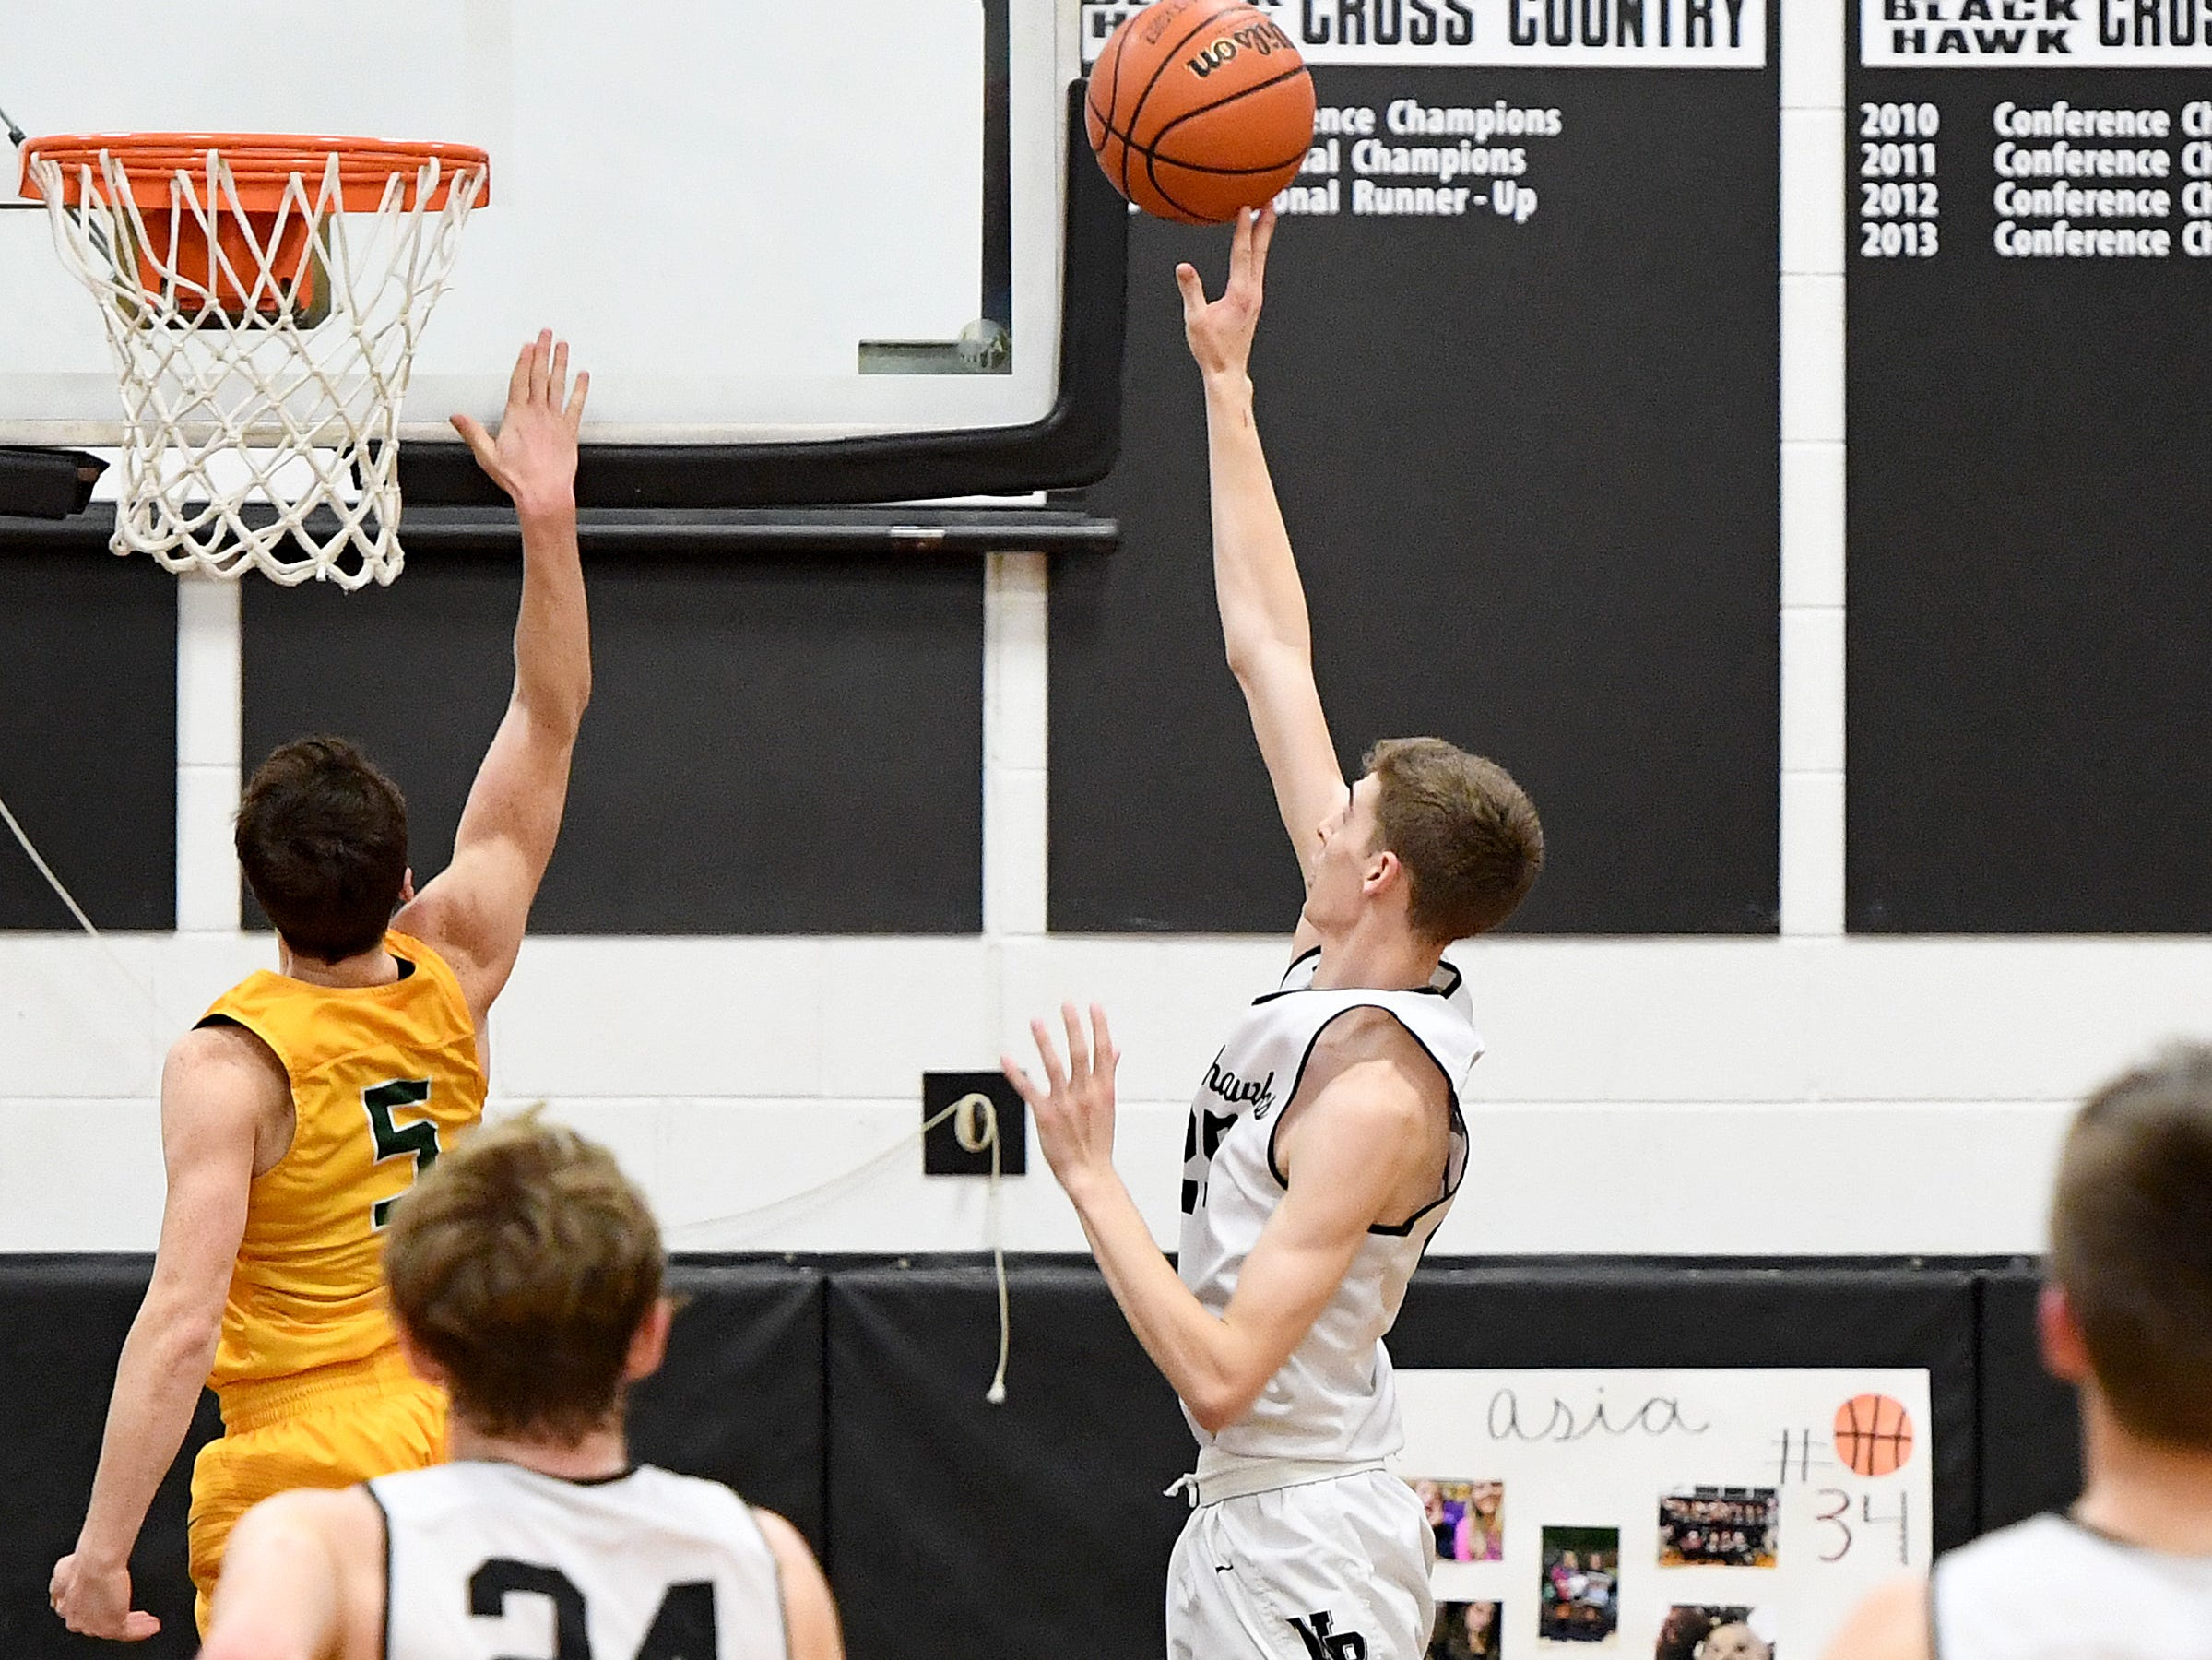 North Buncombe hosted Reynolds on Feb. 8, 2019. The Blackhawks defeated the Rockets 72-68.